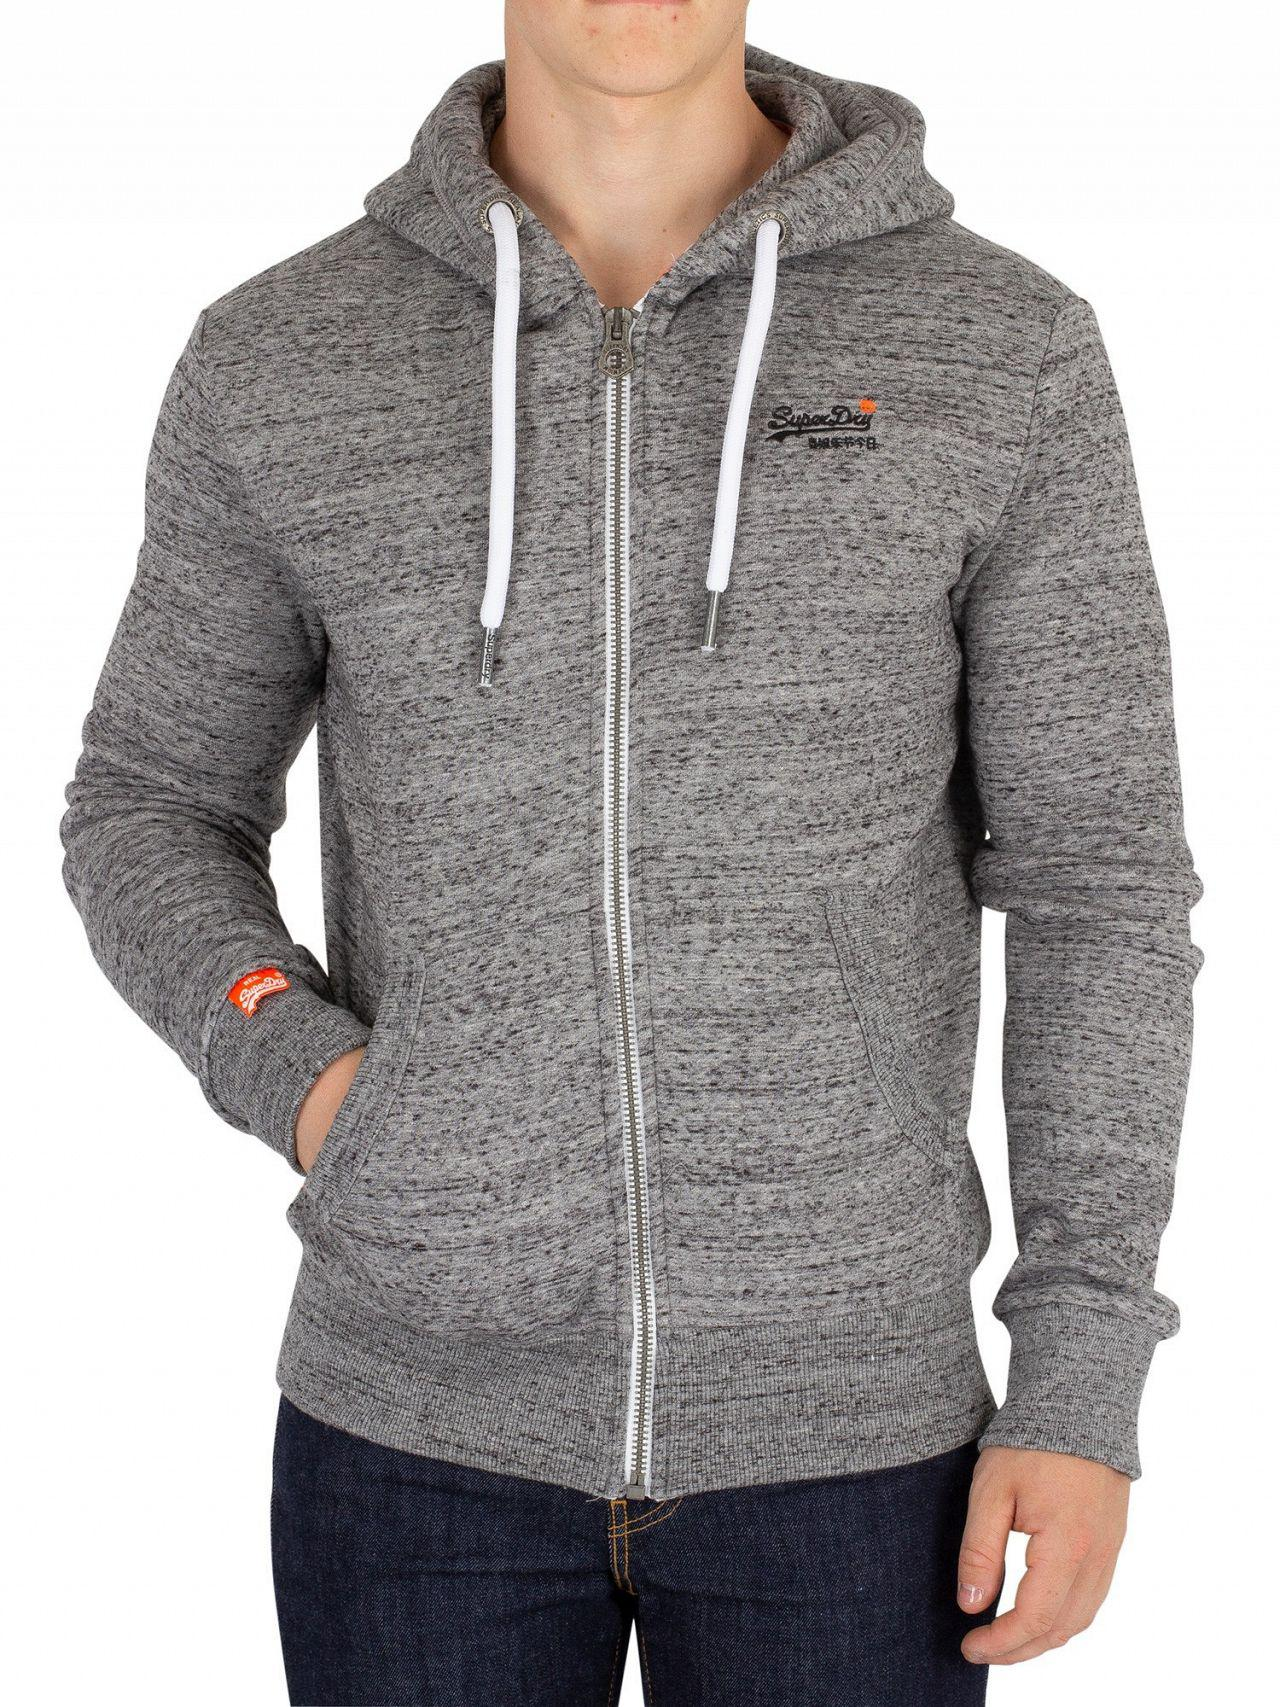 41dafde5 New Mens Superdry Vintage Authentic Fade Hoodie Silver Marl Clothes, Shoes  & Accessories Men's Clothing